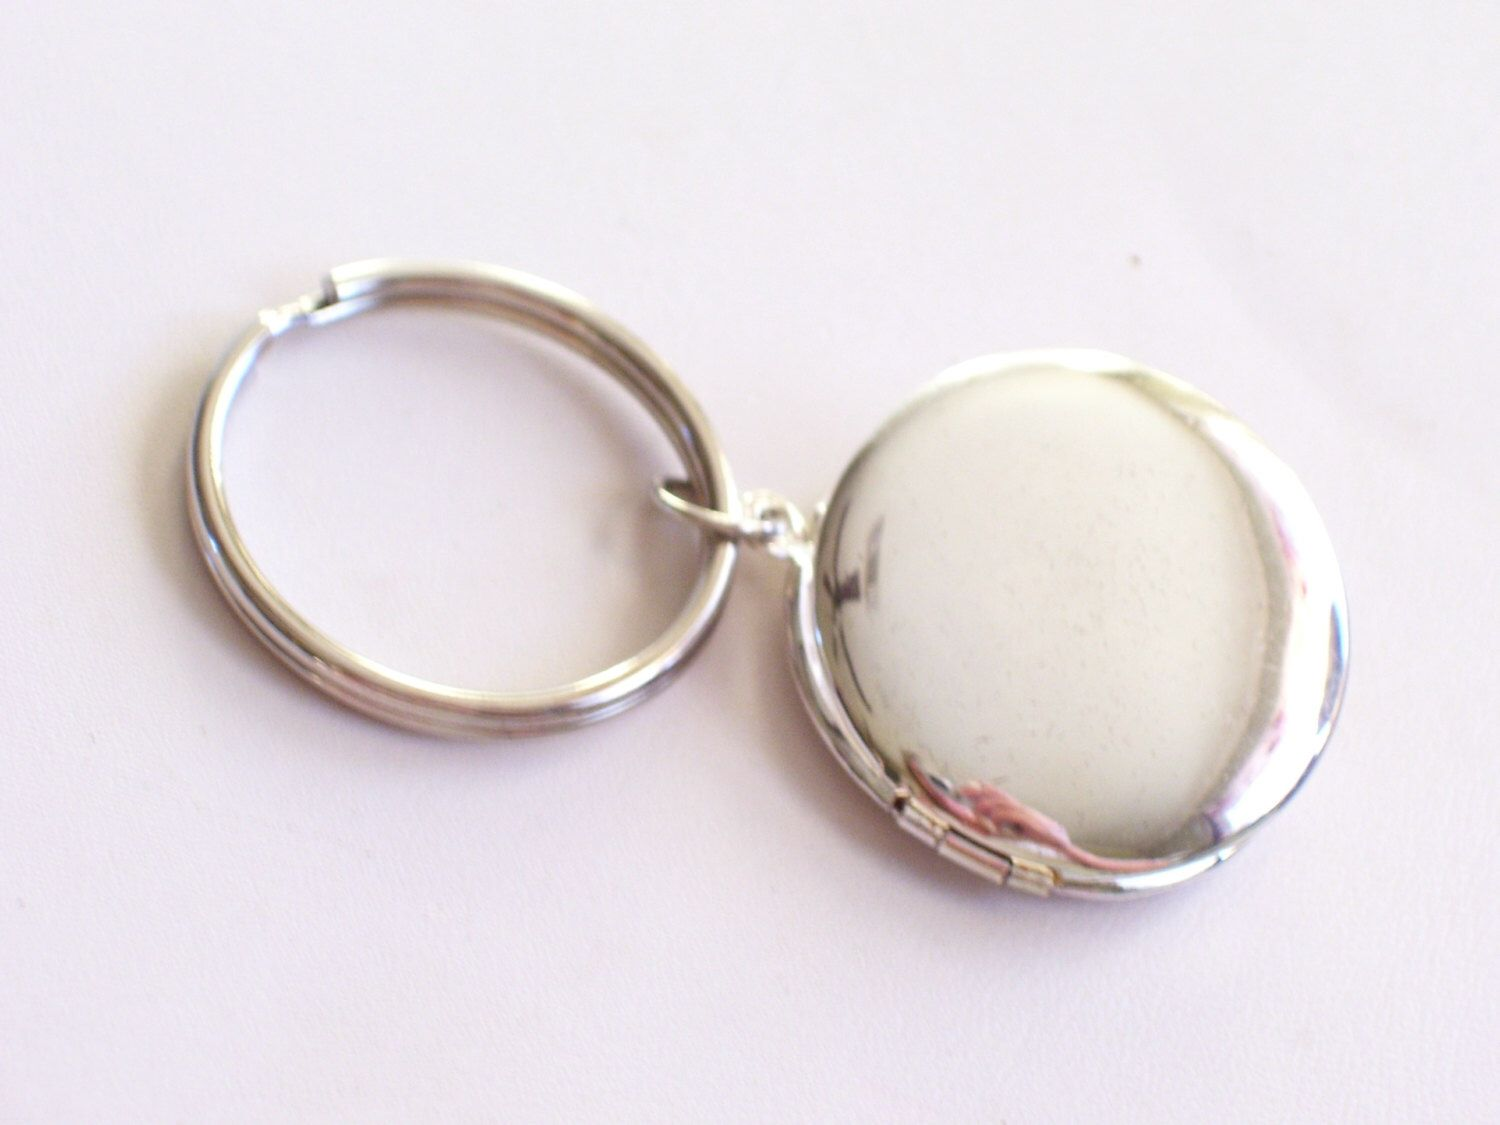 p keychain charms holder of picture photo memory locket living keyring silver crystal round s lockets glass